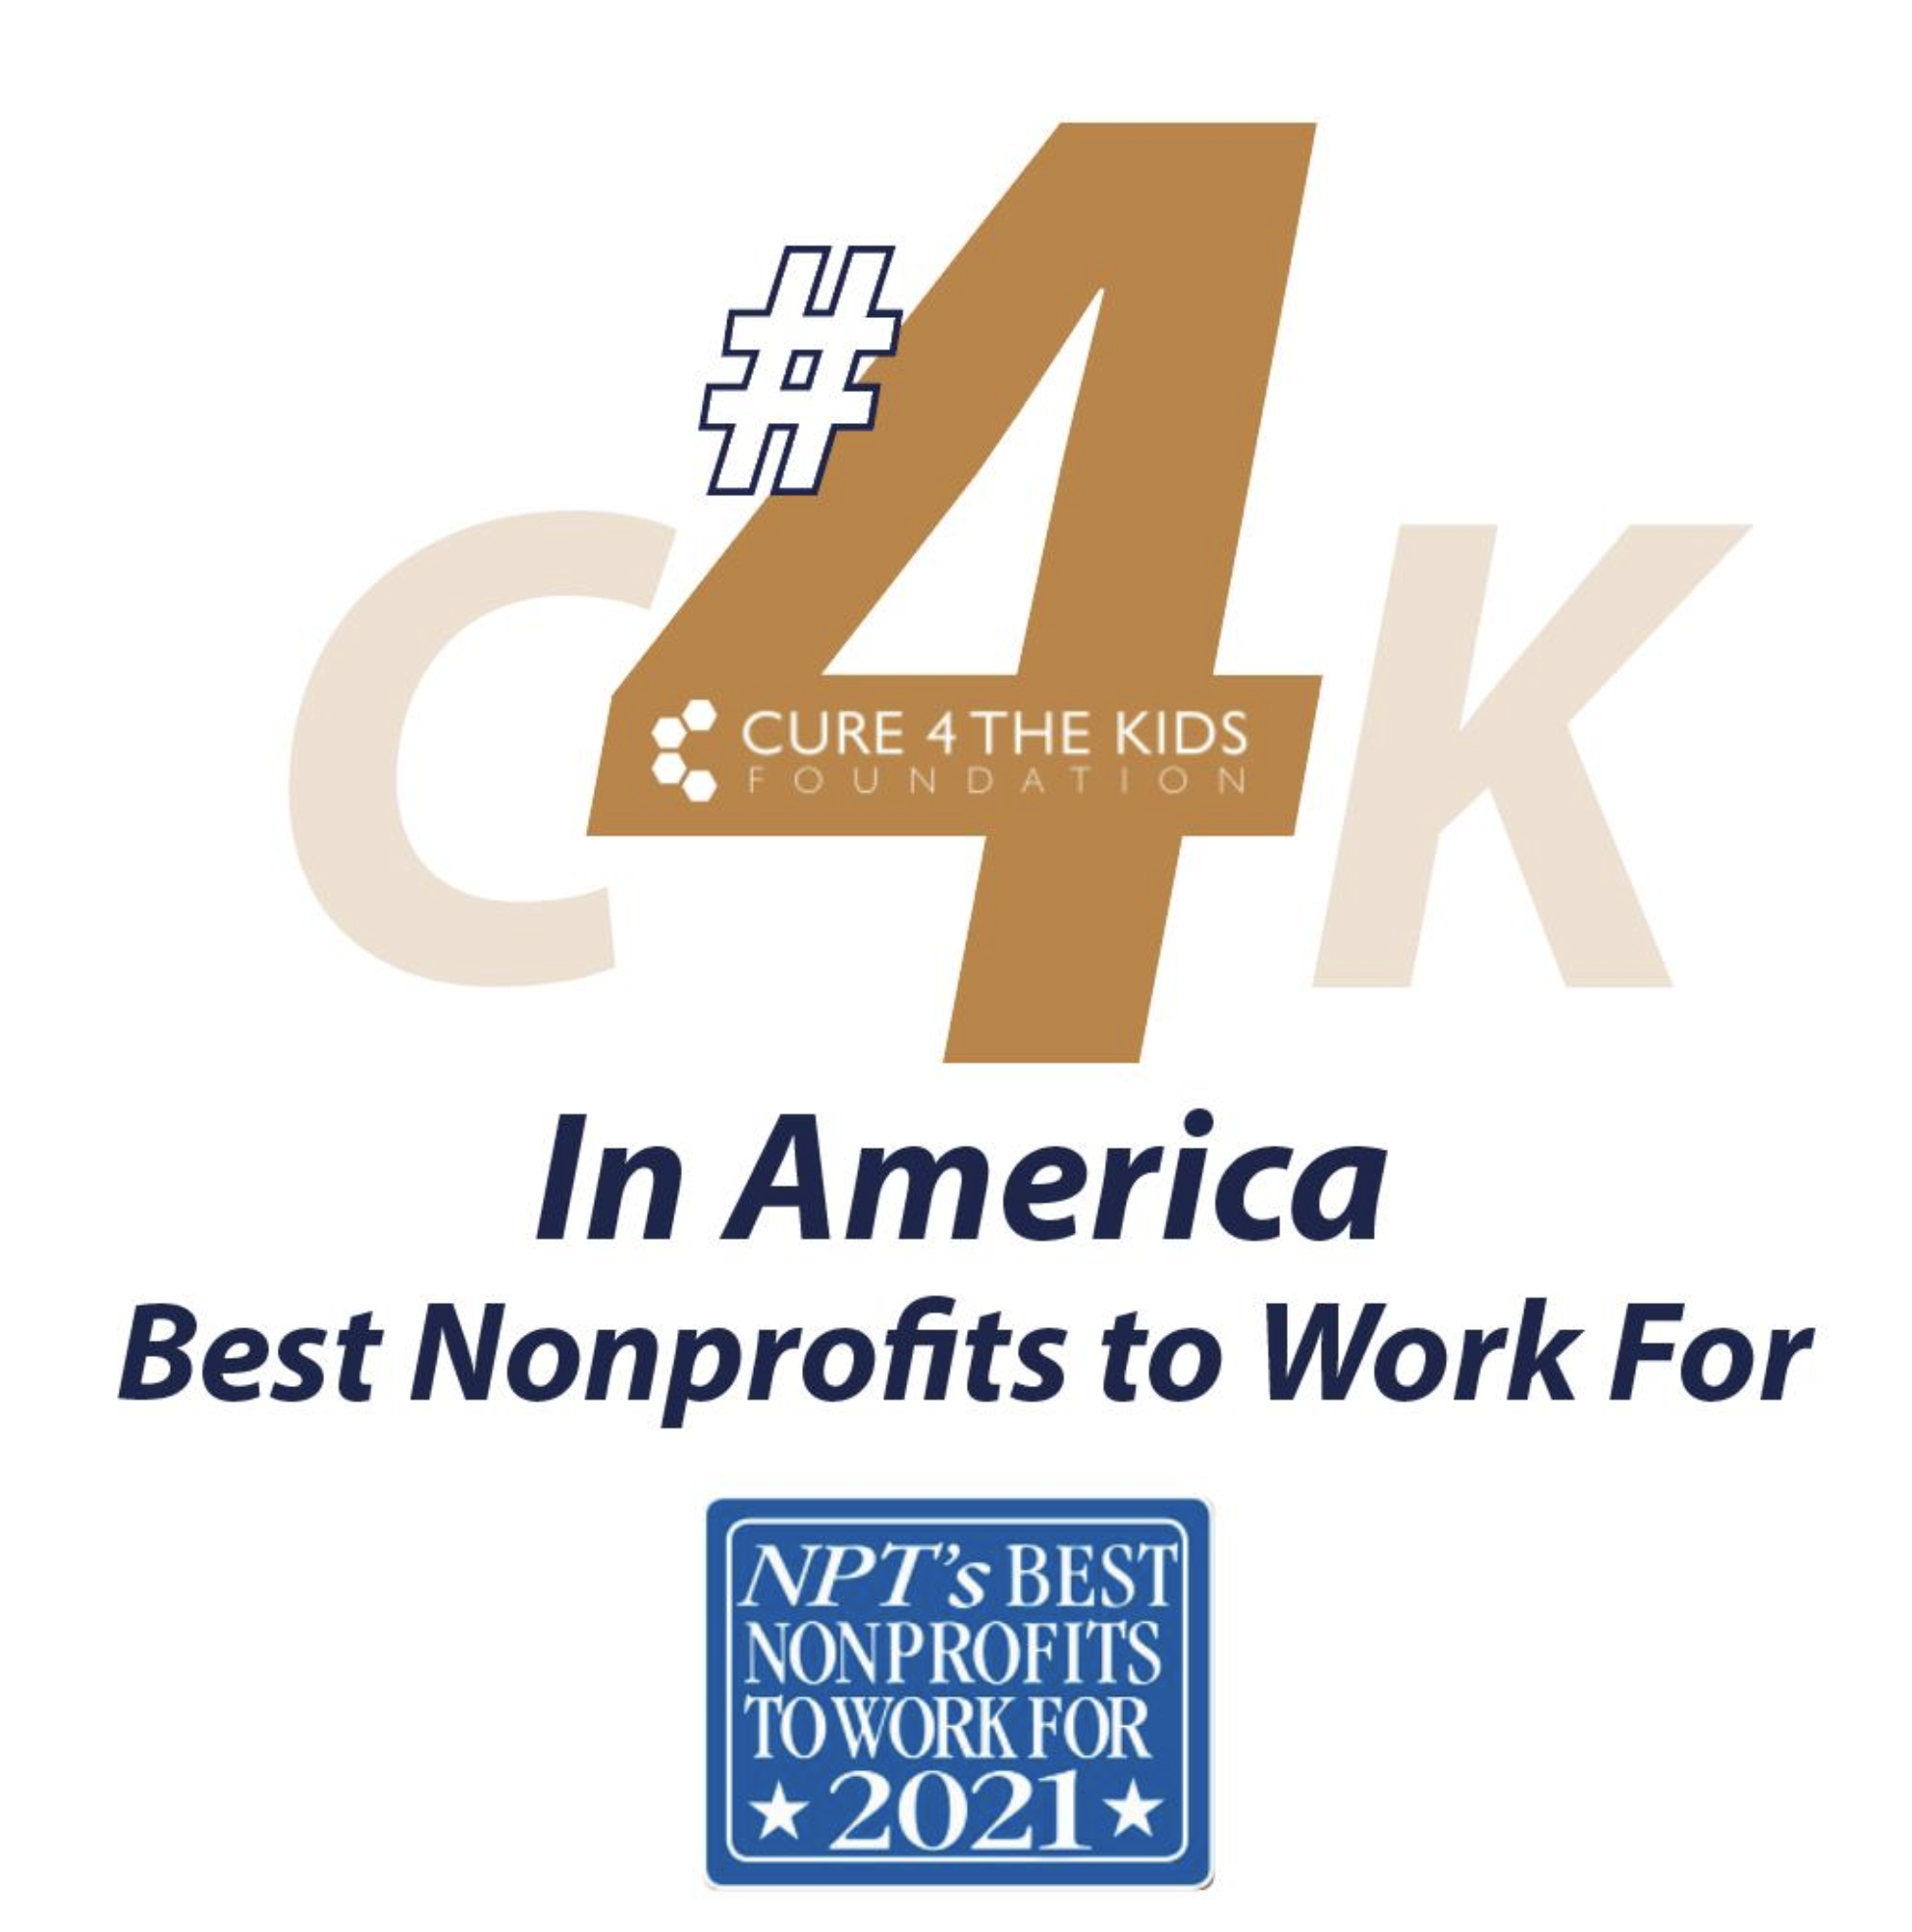 Cure 4 The Kids Foundation Ranks No. 4 Among Best Nonprofits to Work For